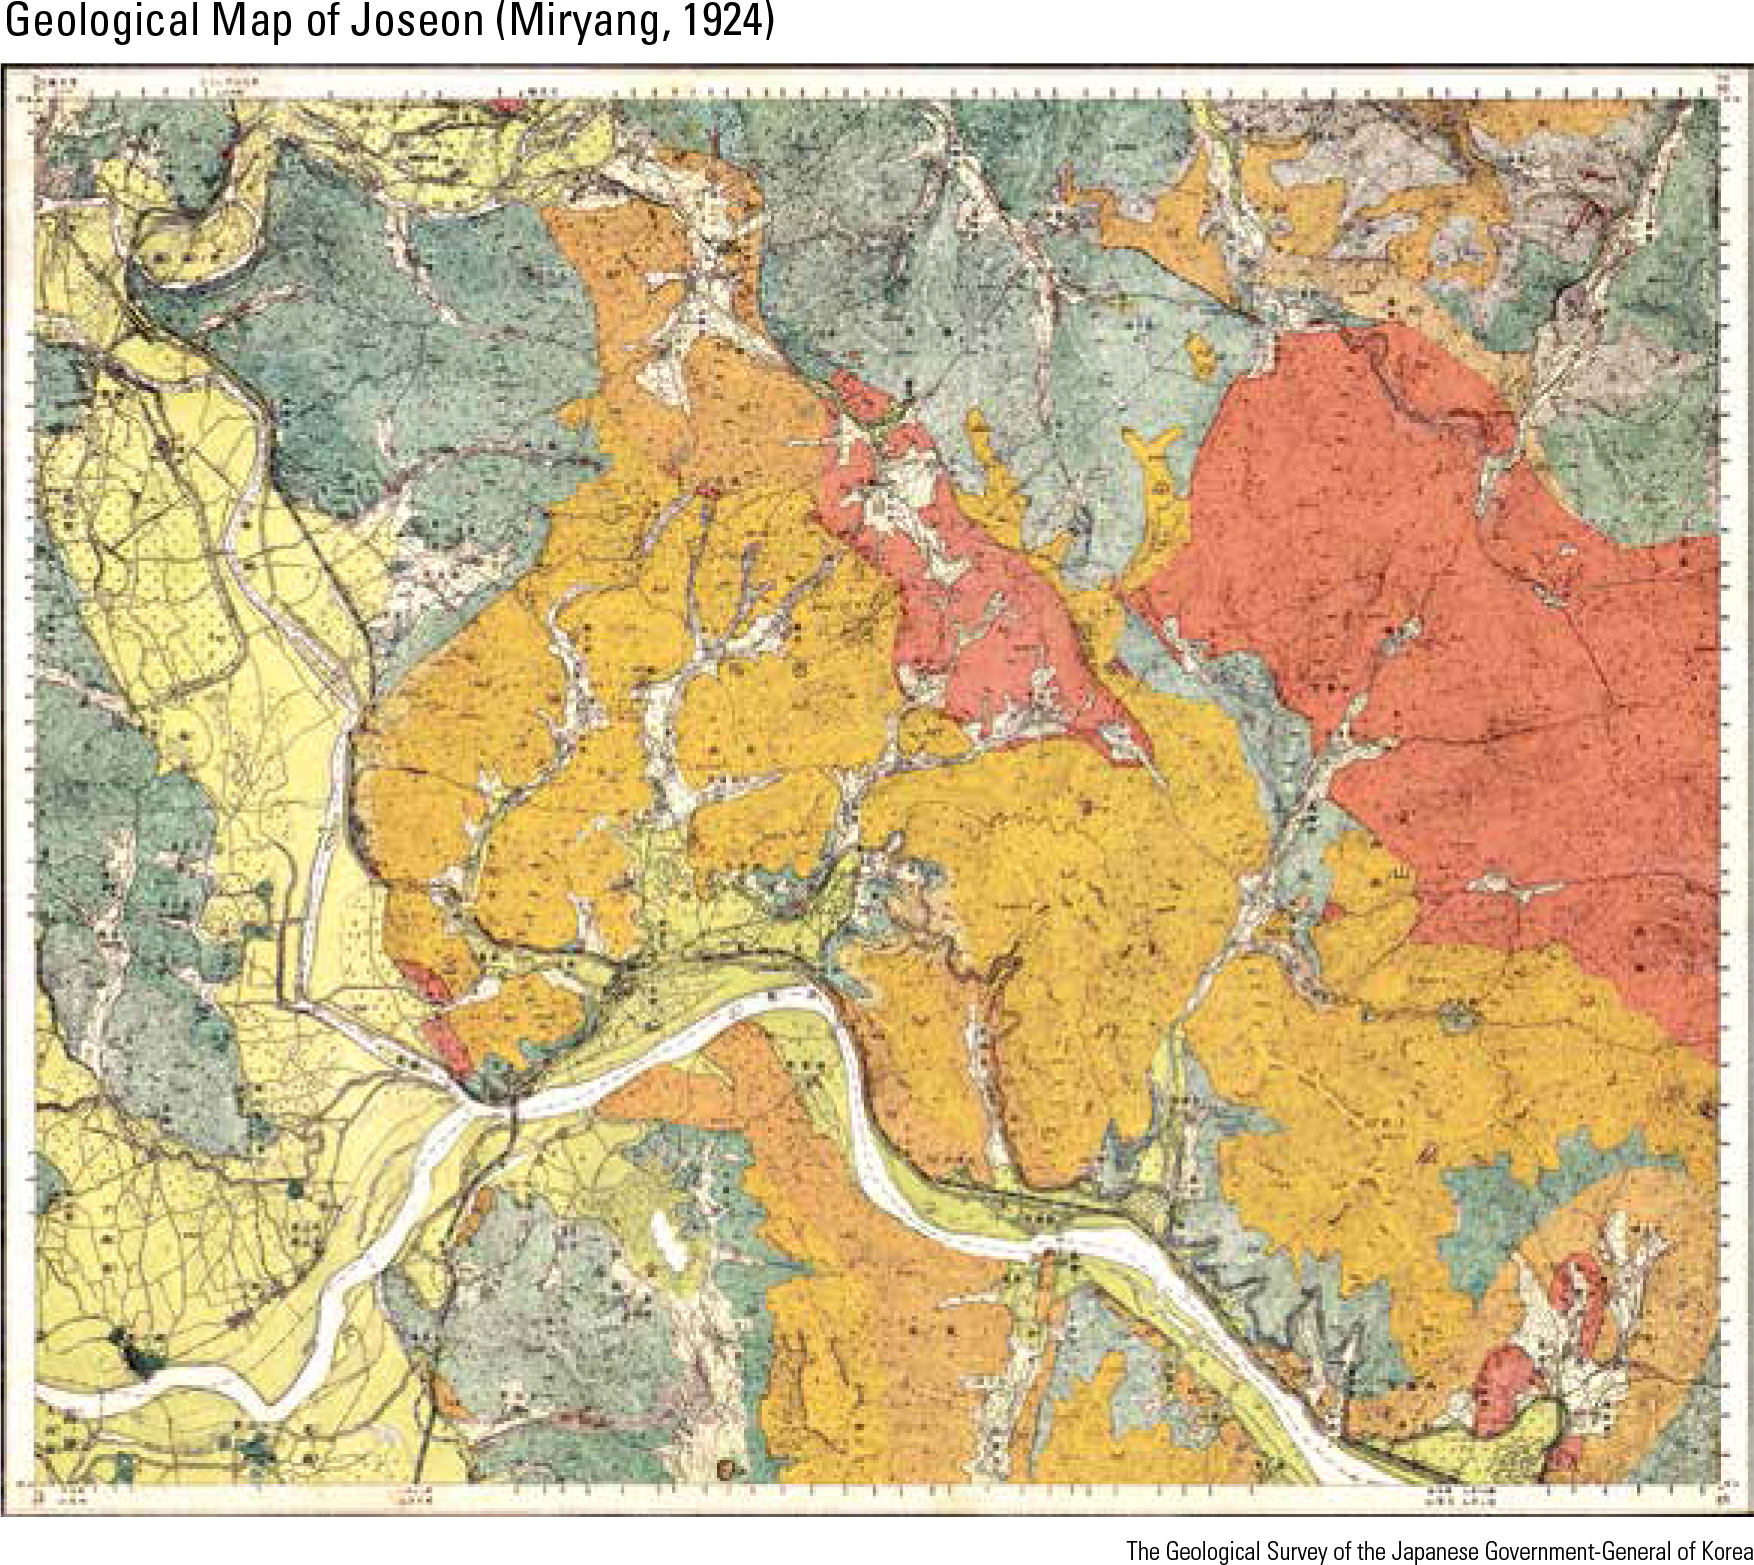 Geological Map of Joseon (Miryang, 1924)